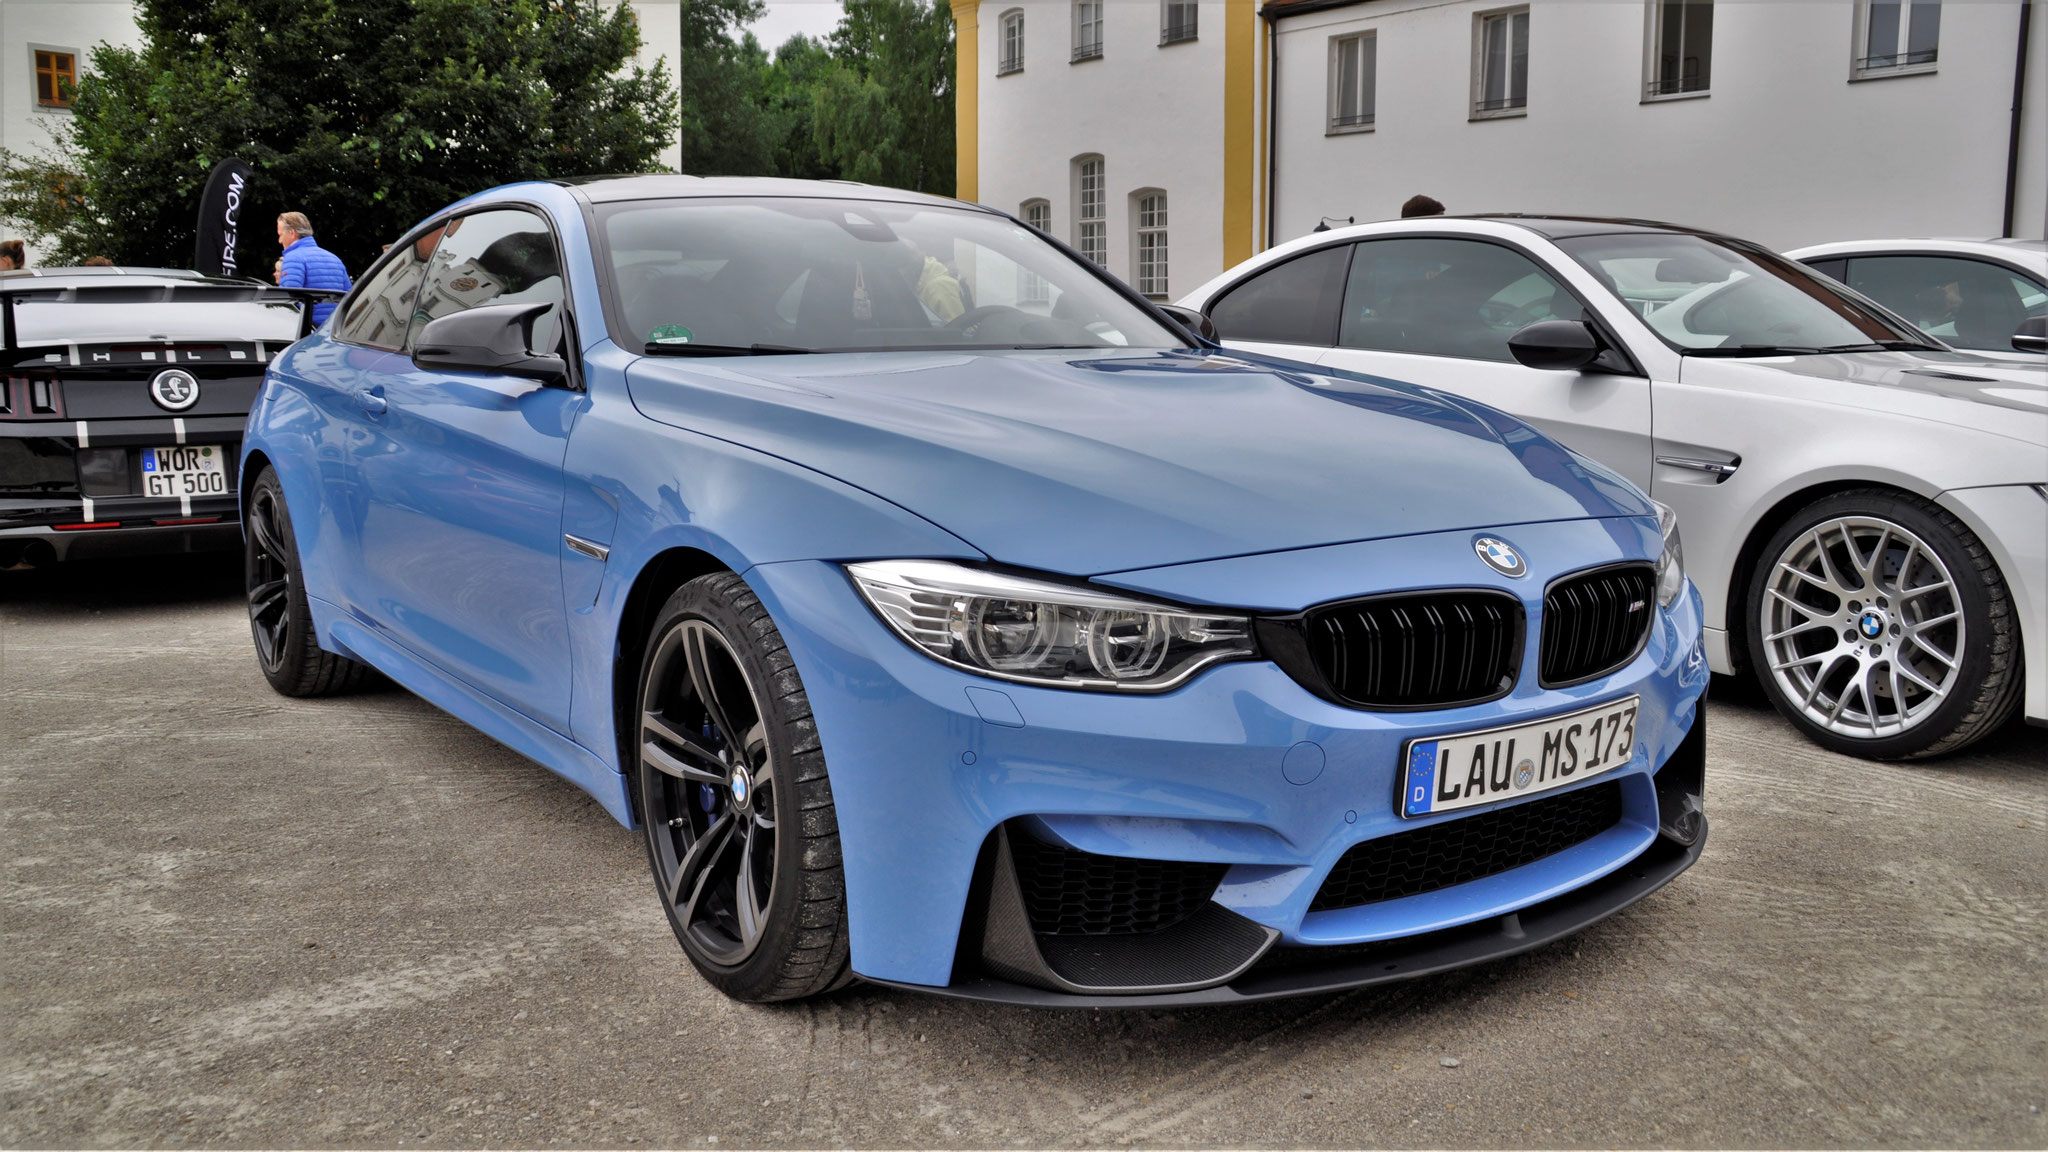 BMW M4 - LAU-MS-173